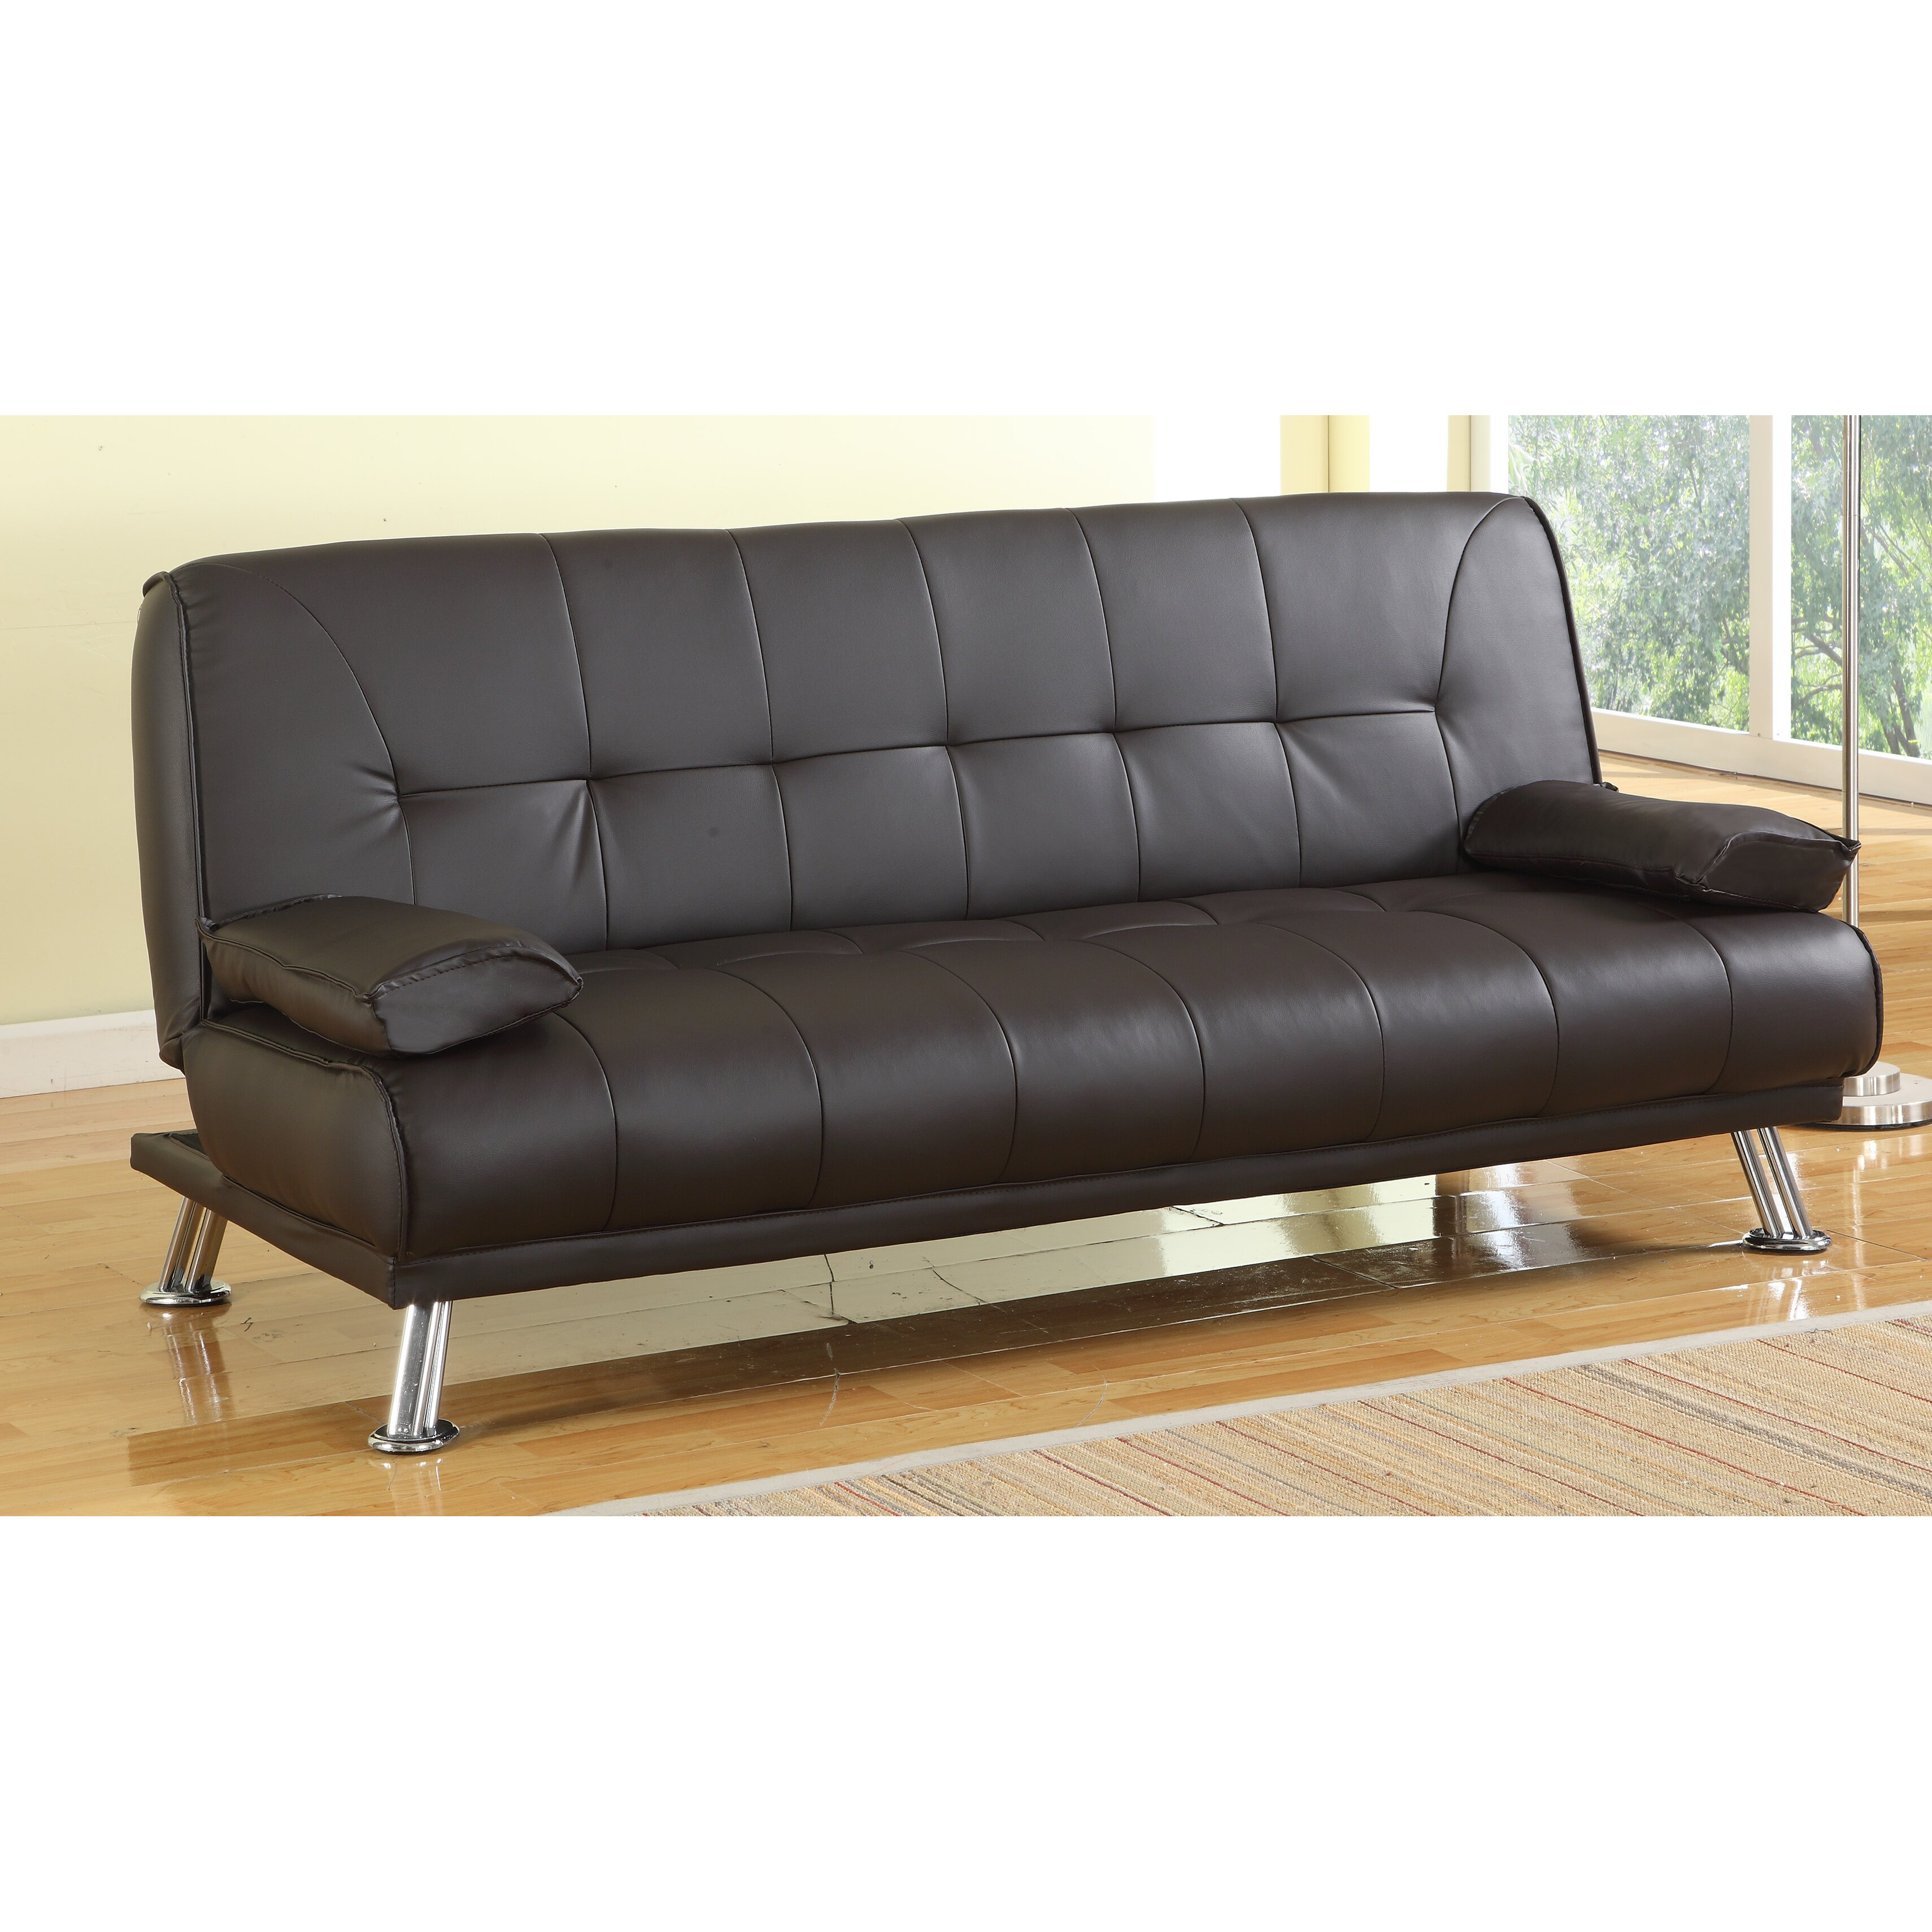 home haus 3 seater clic clac sofa reviews wayfair uk. Black Bedroom Furniture Sets. Home Design Ideas